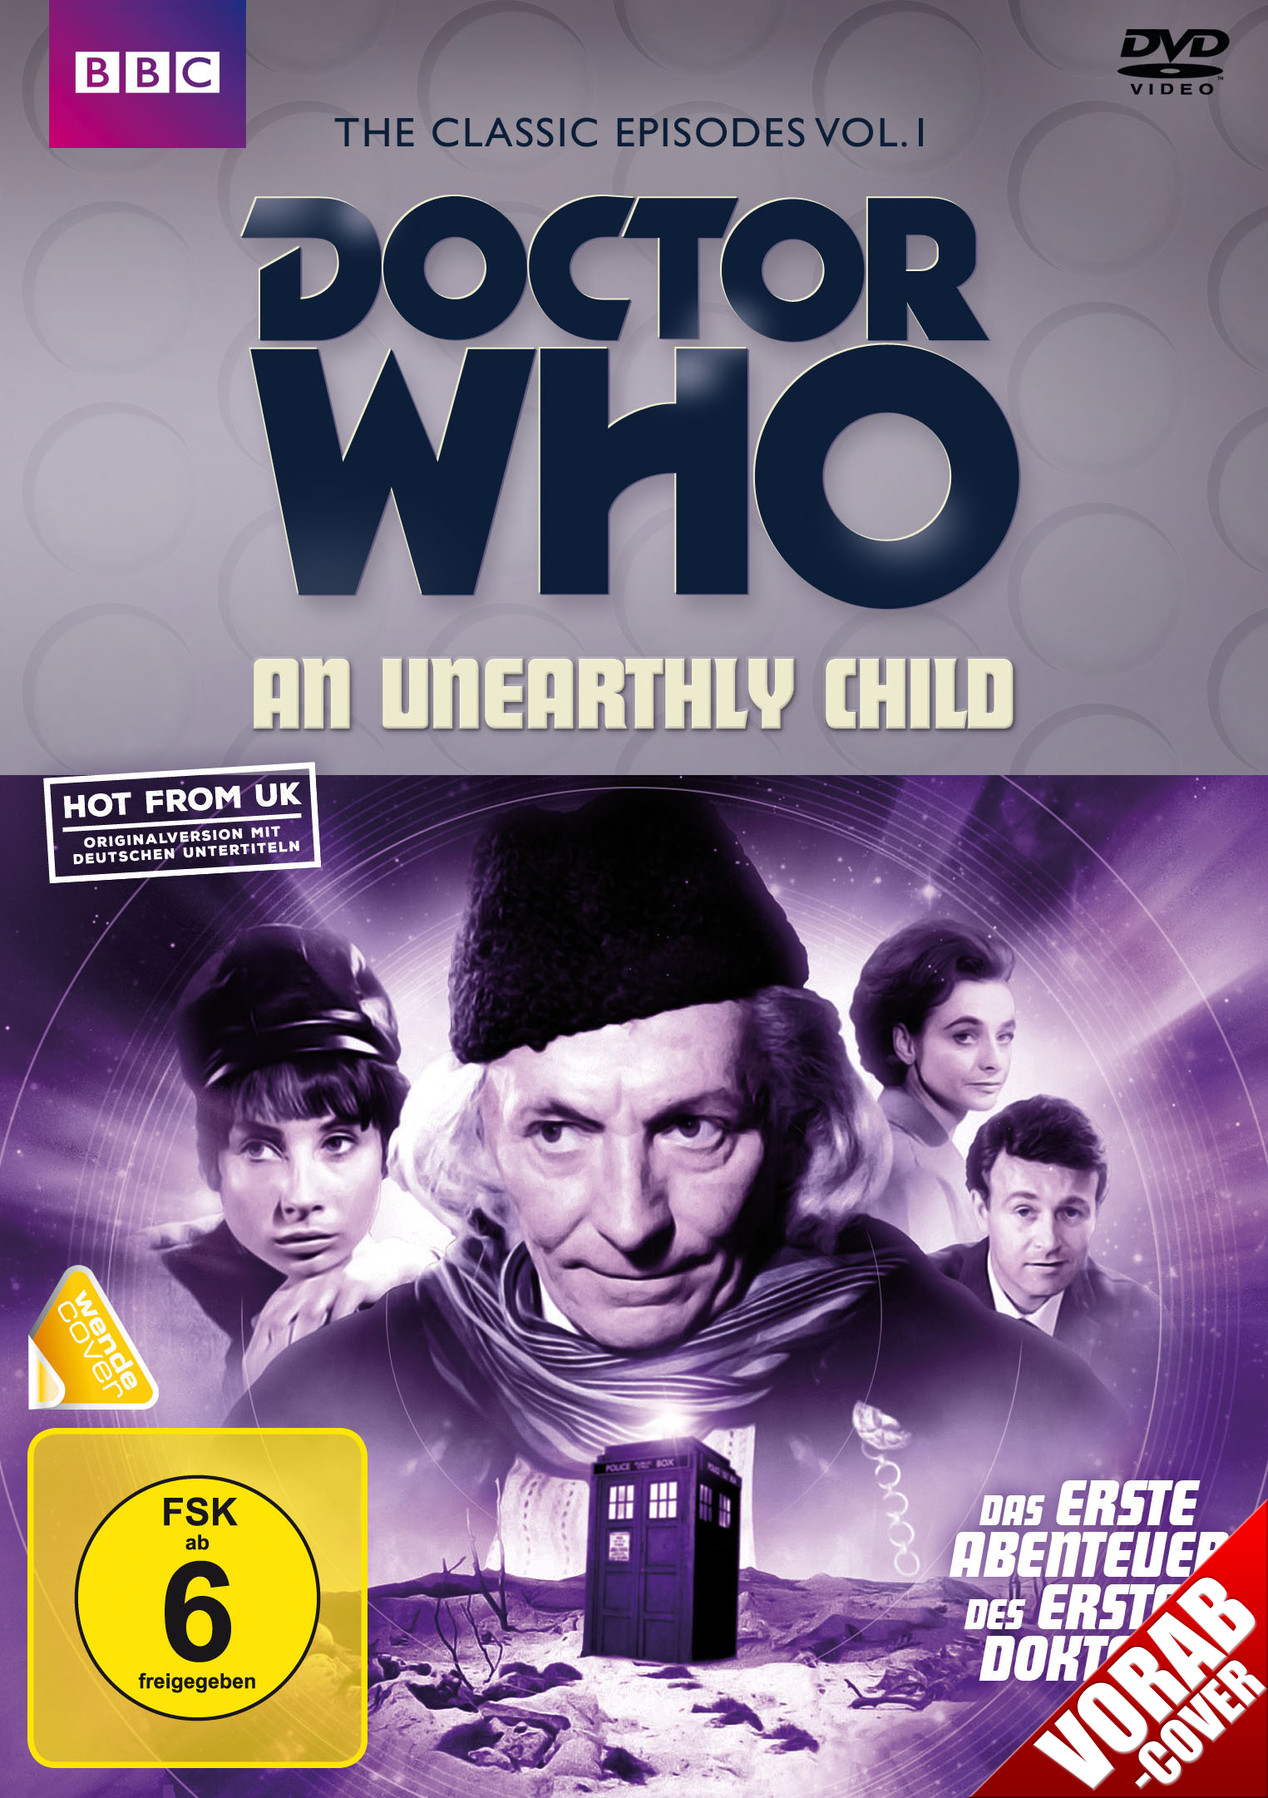 German release An Unearthly Child (Credit: WVG / Polyband)